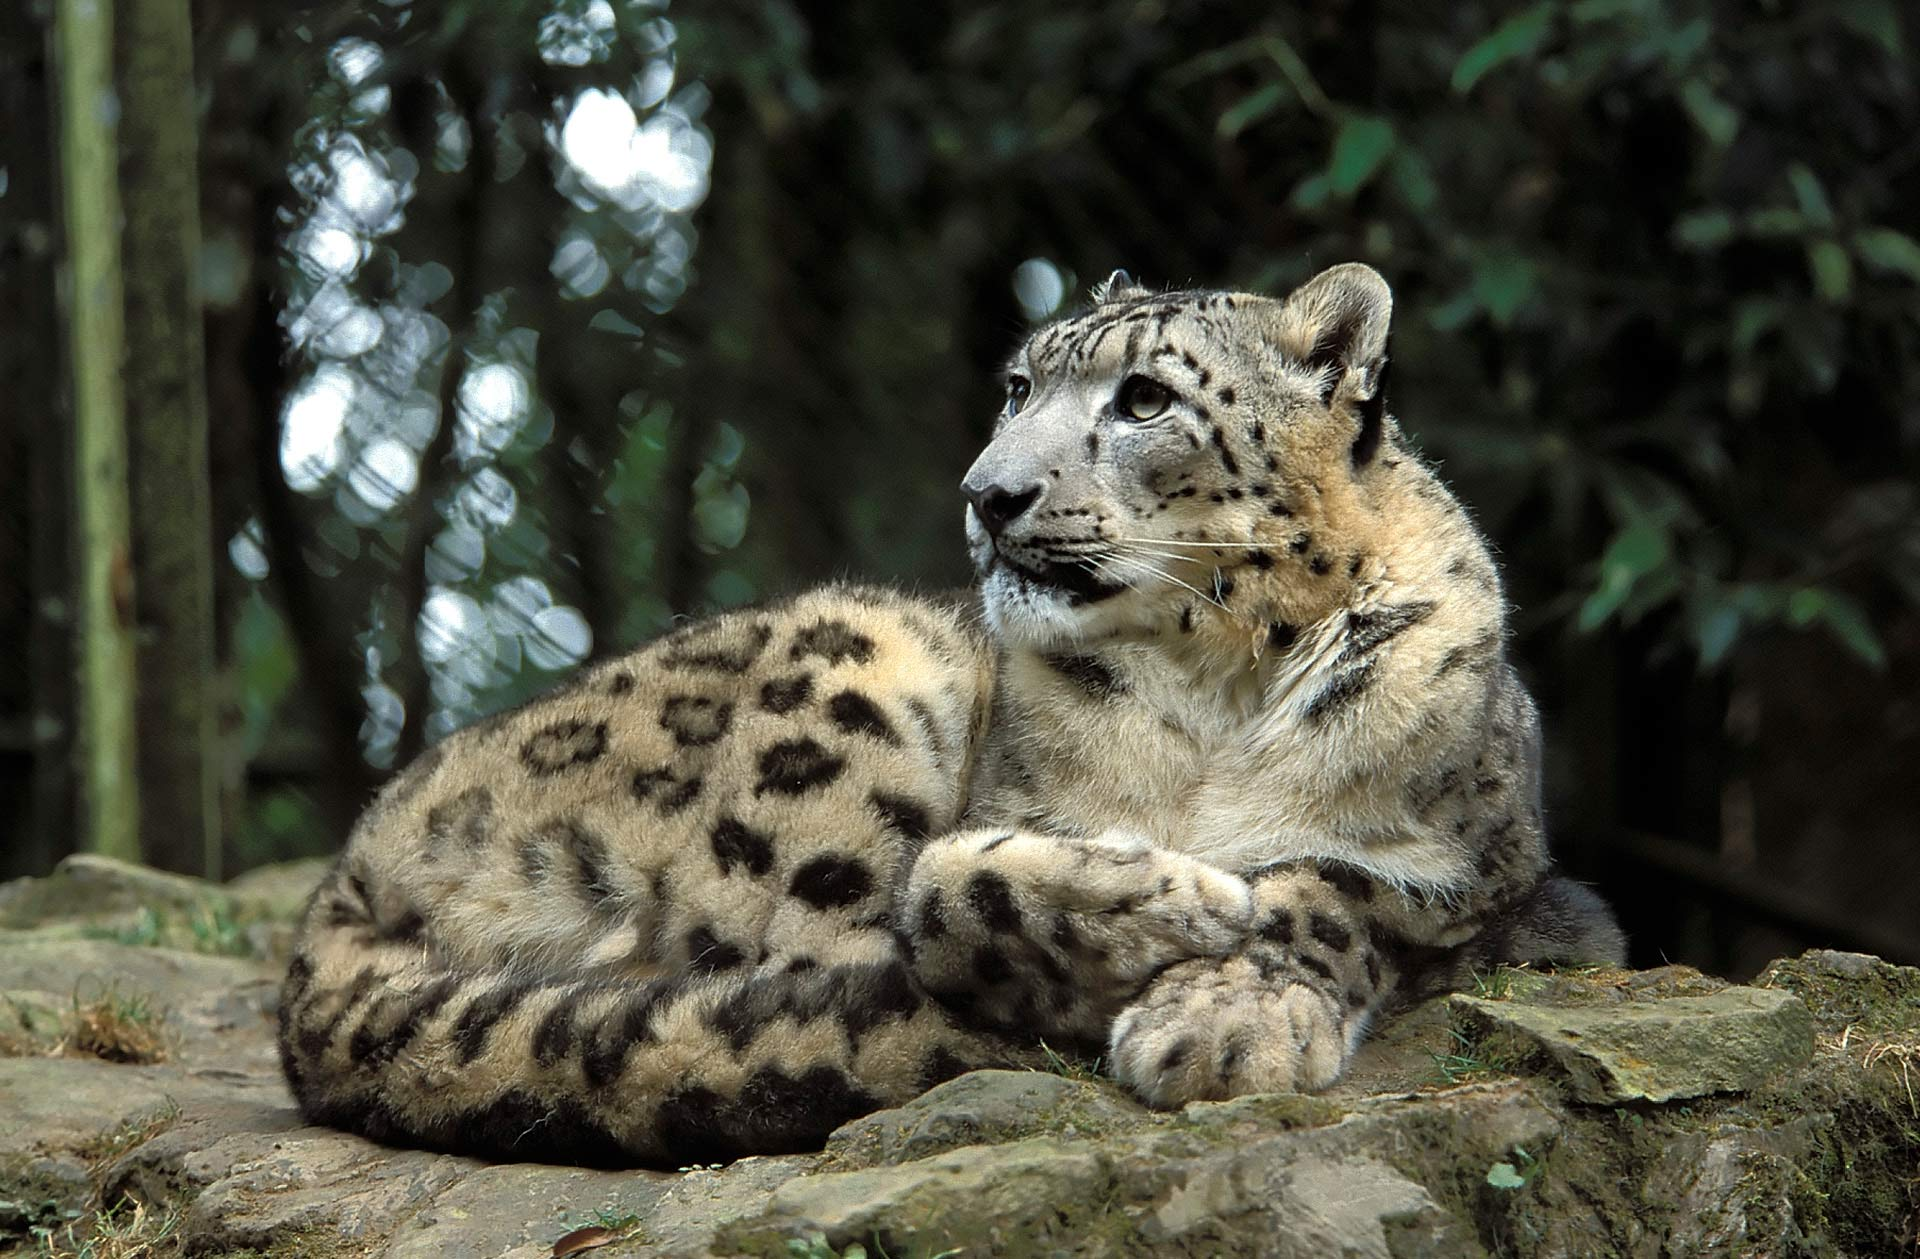 Snow leopard (Uncia uncia) in the Padmaja Naidu Himalayan Zoological Park, Darjeeling, West Bengal, India